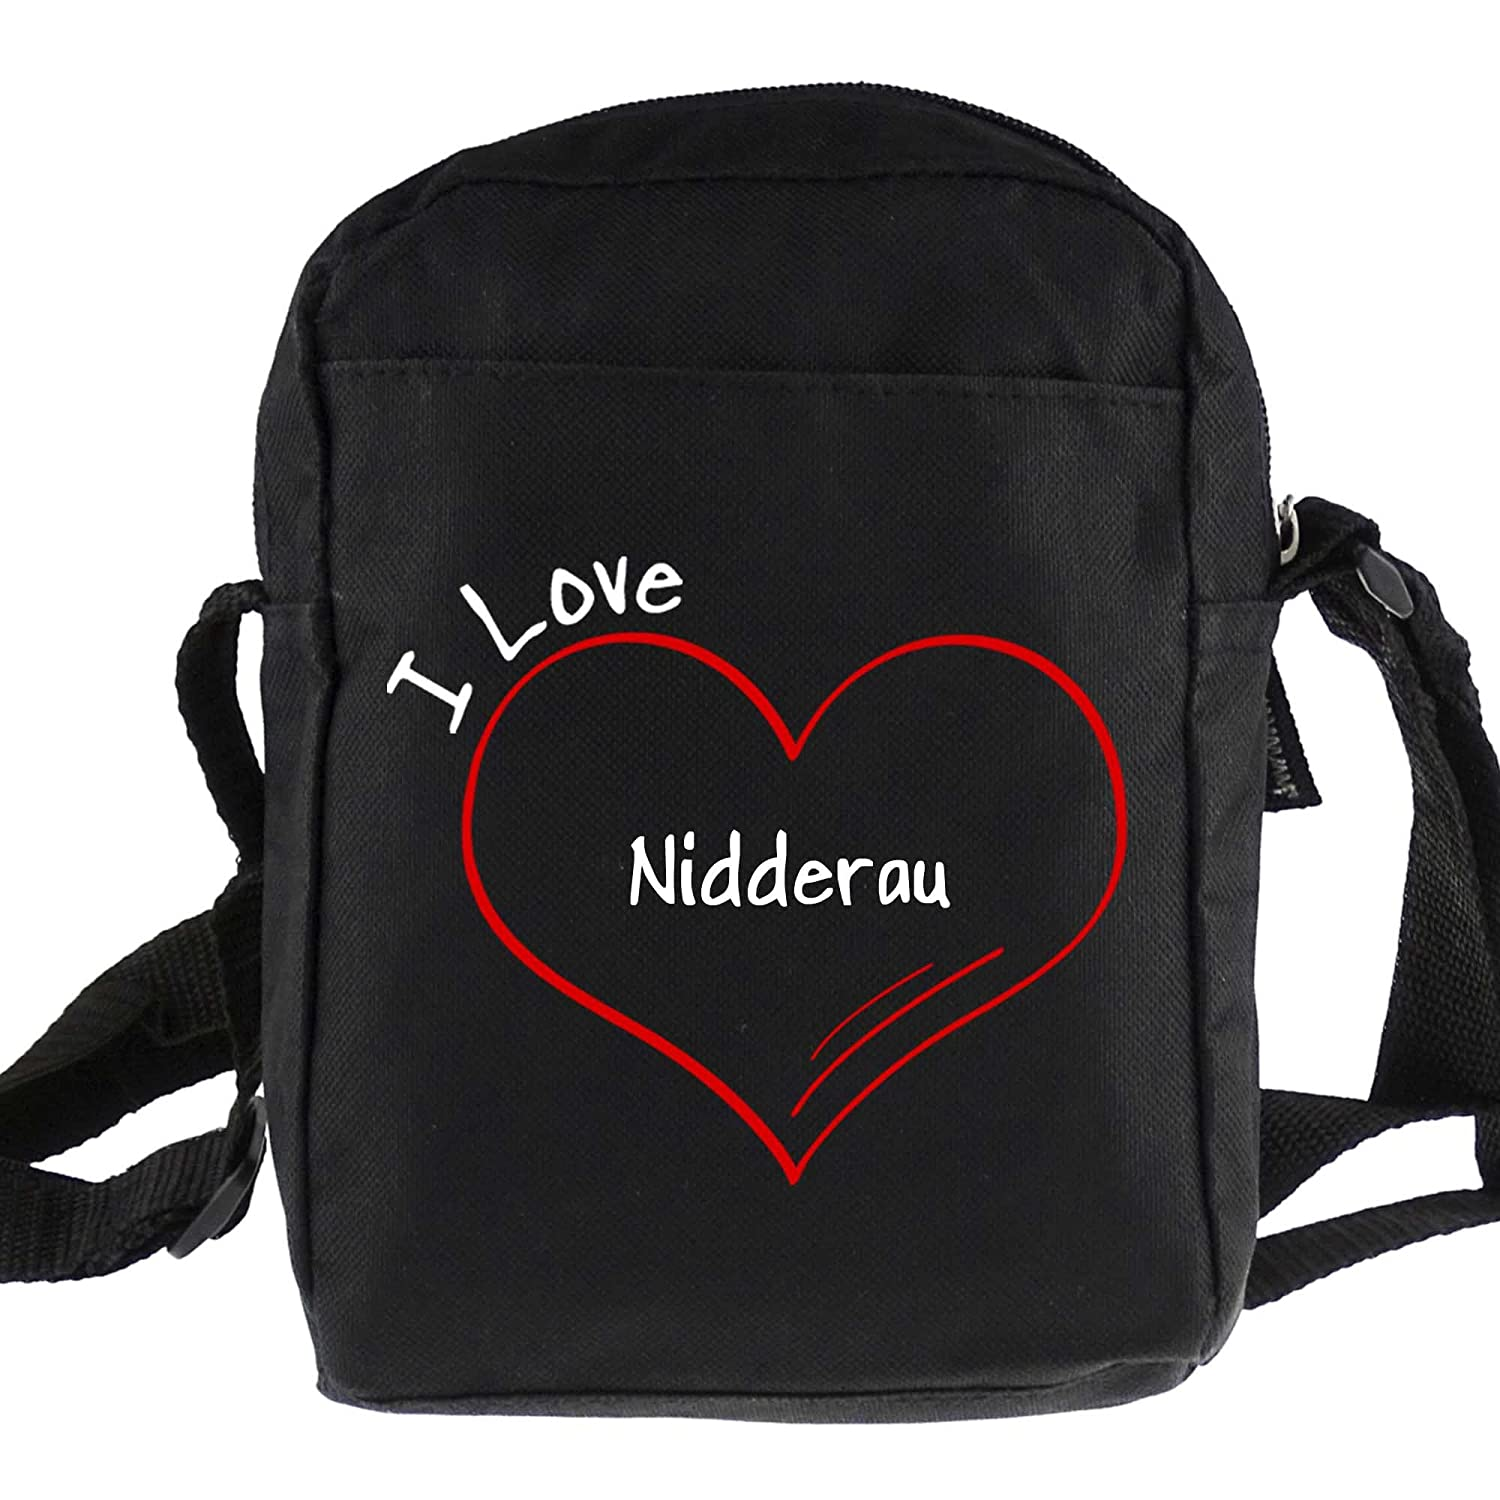 Modern I Love Nidderau Shoulder Bag Black